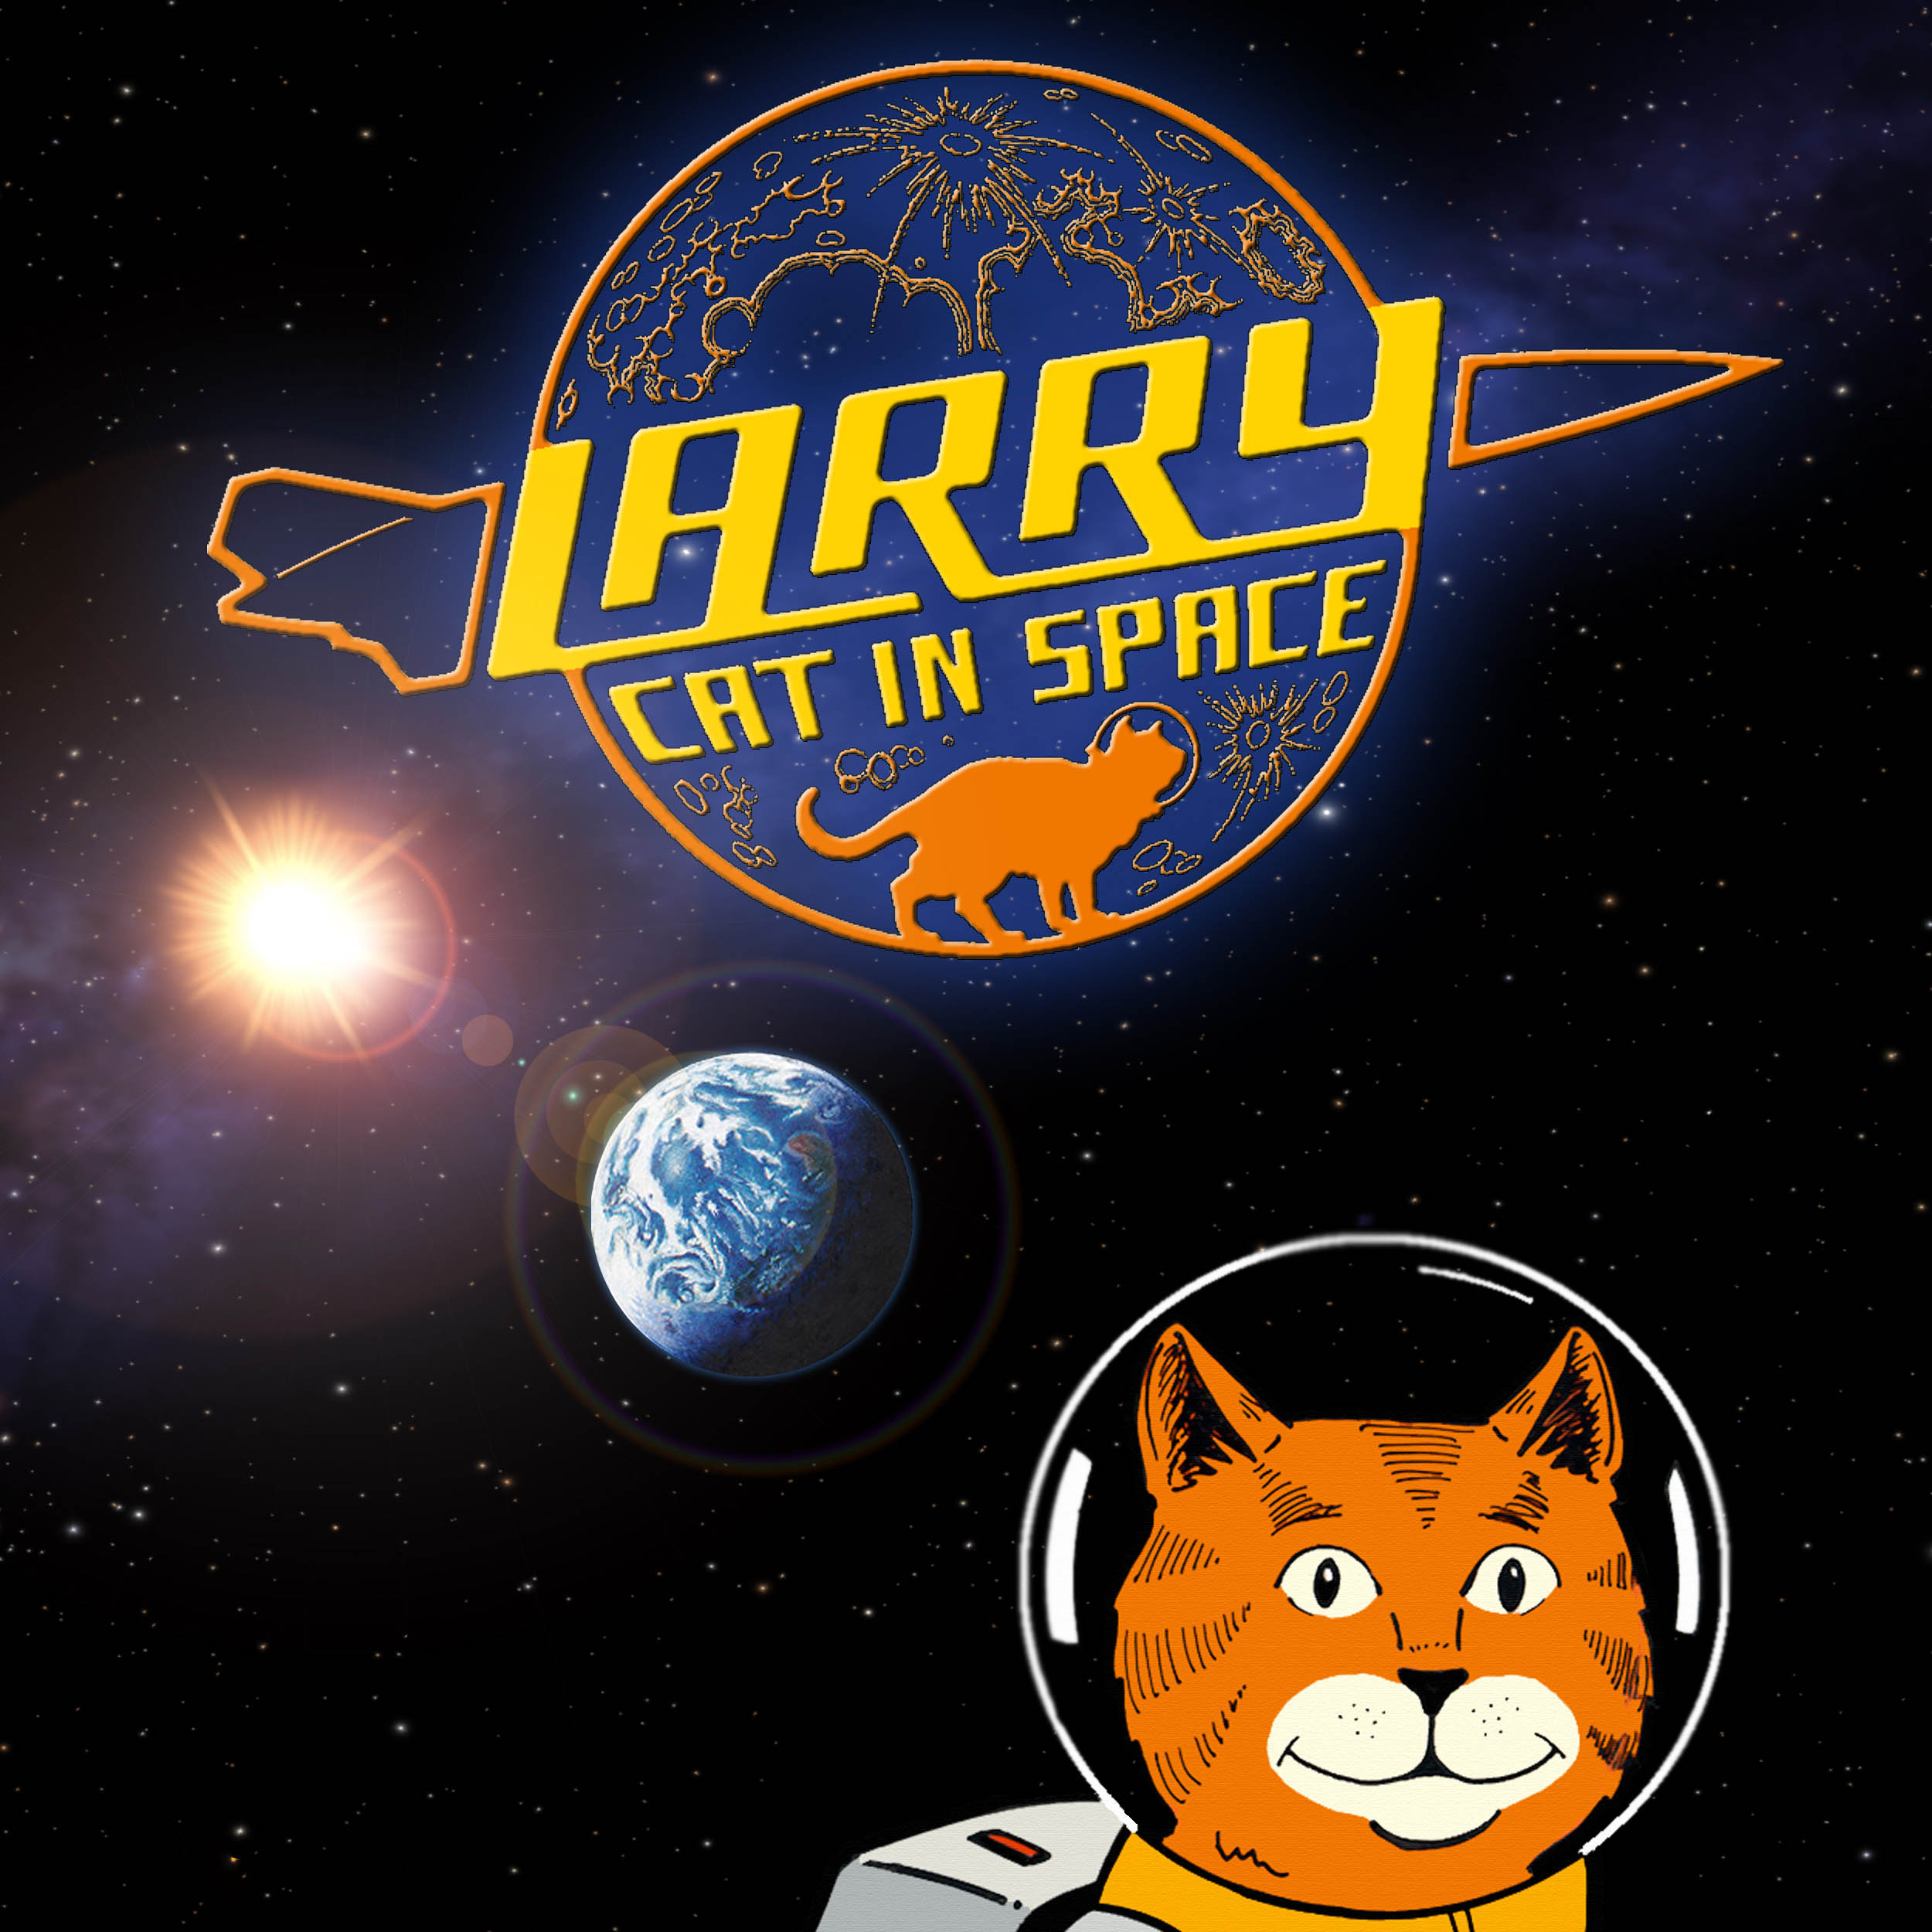 Larry Cat in Space Icon